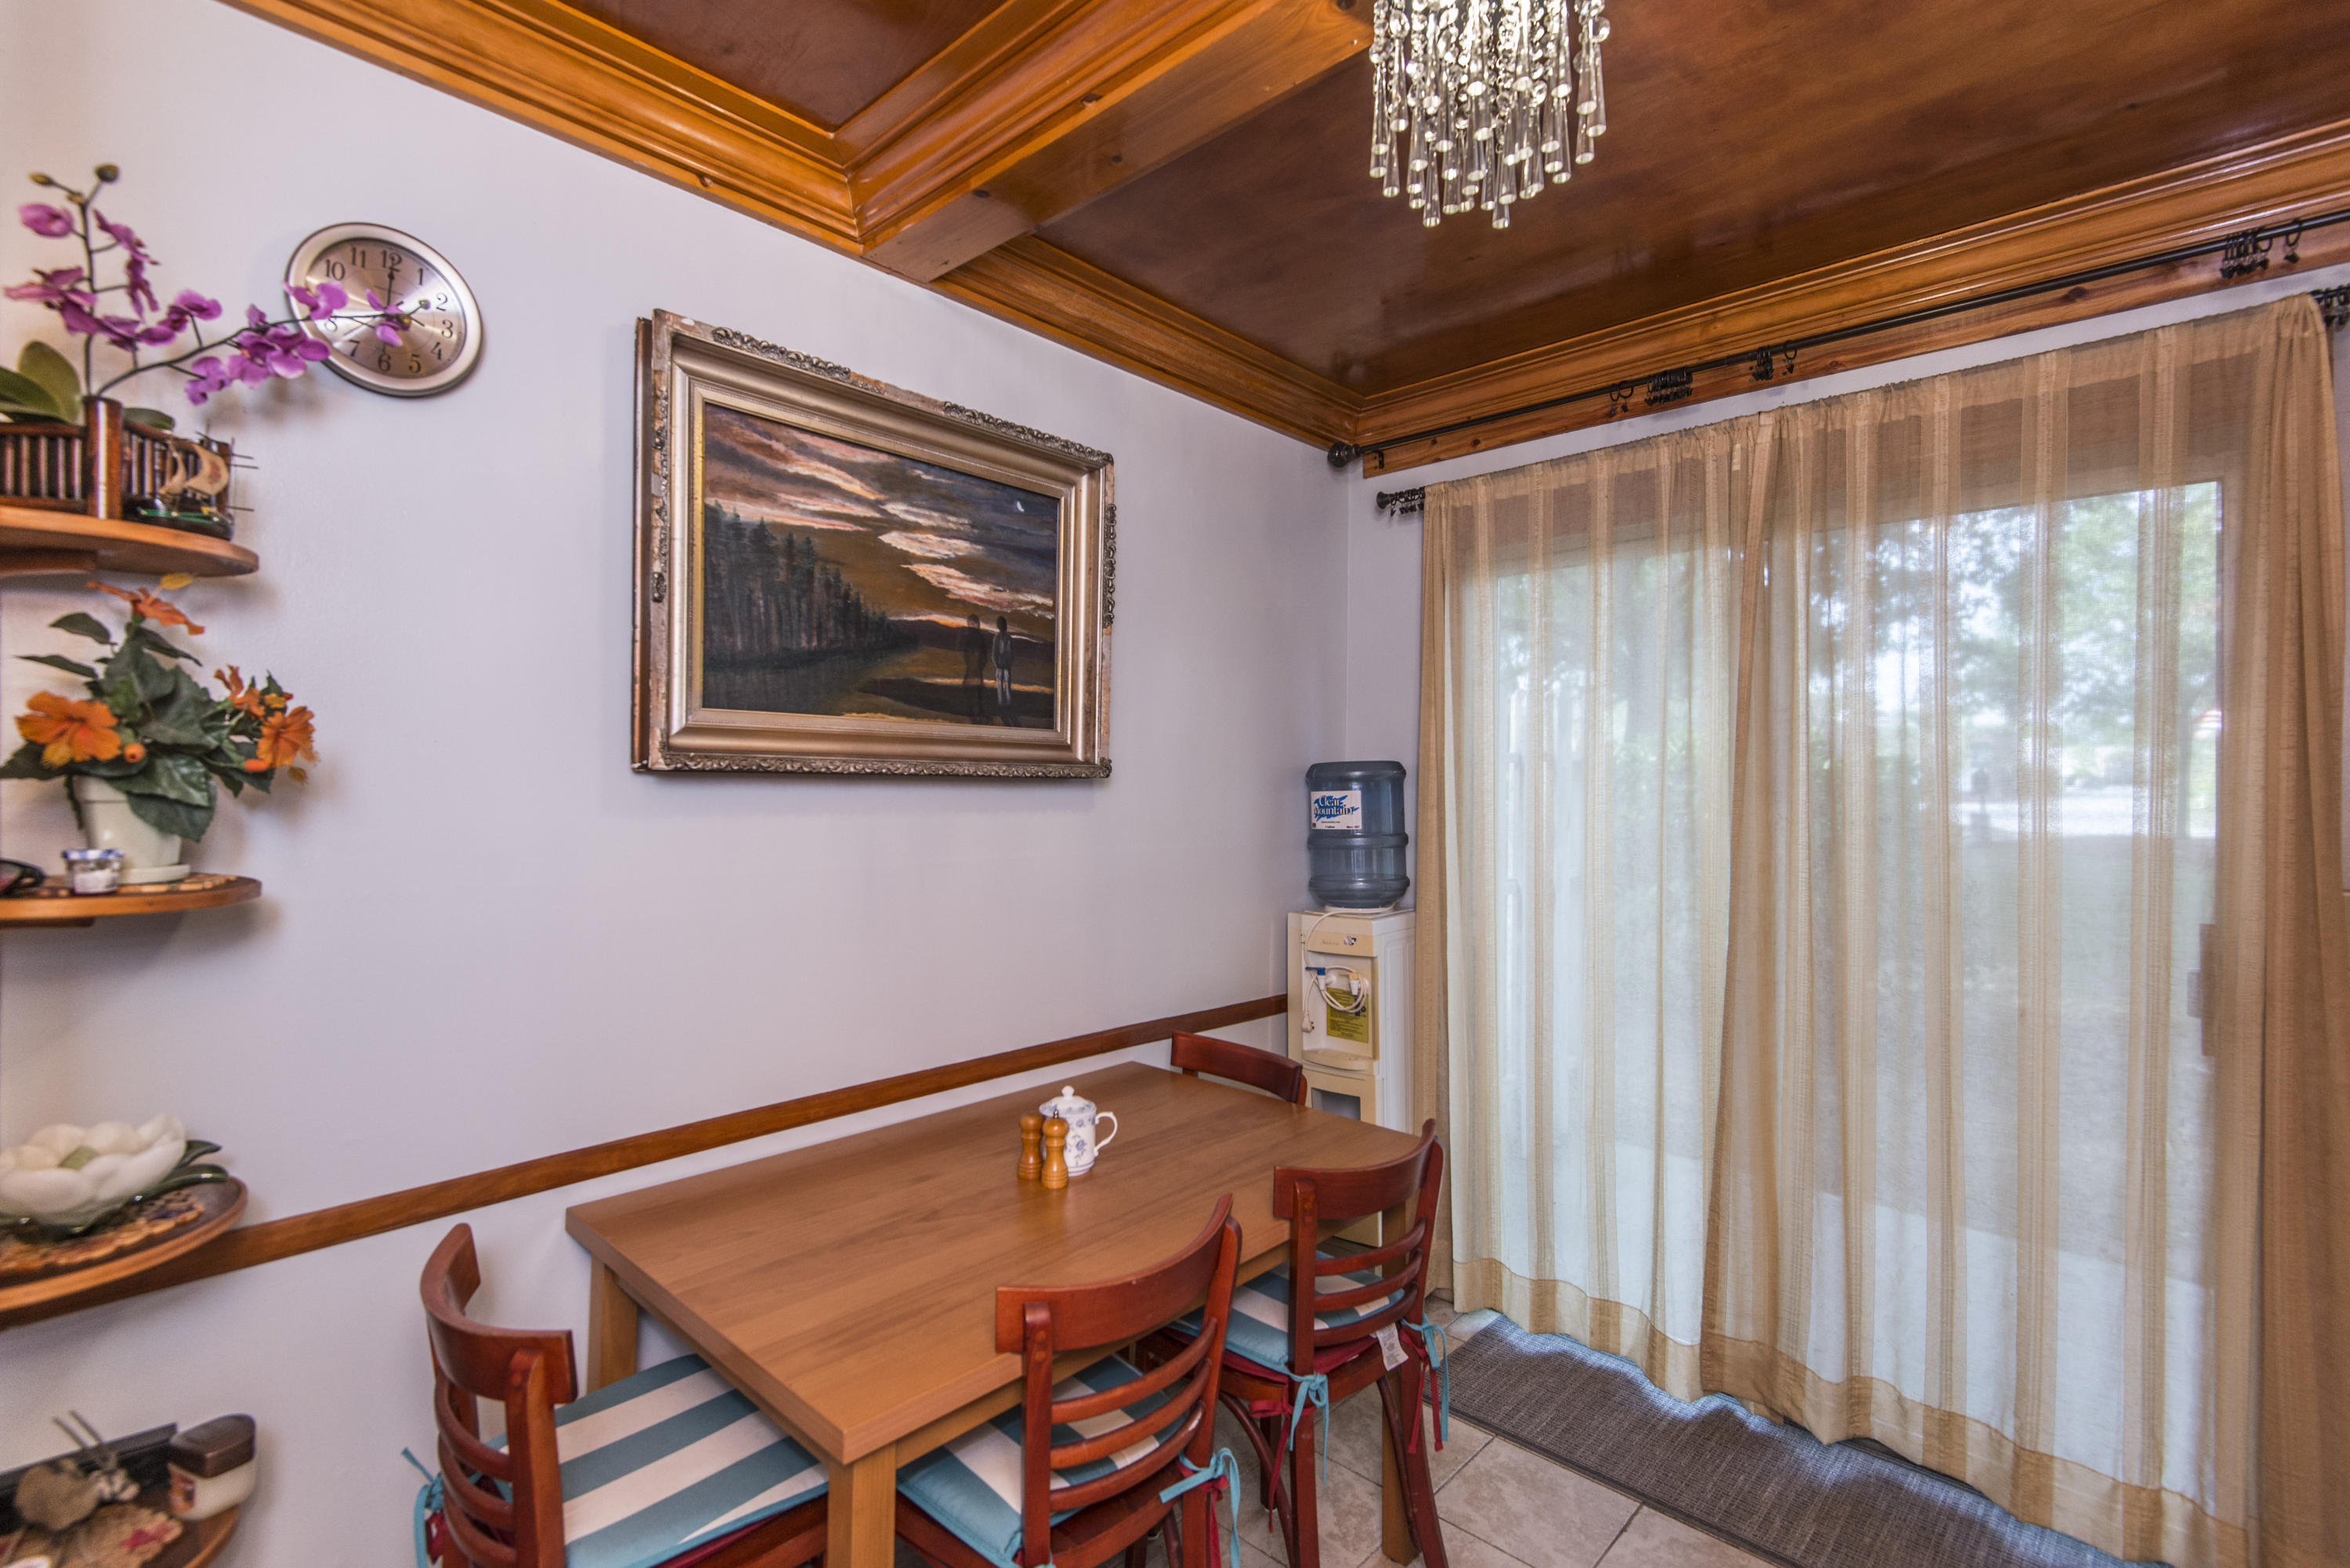 Rivers Point Row Homes For Sale - 21 Rivers Point Row, Charleston, SC - 9